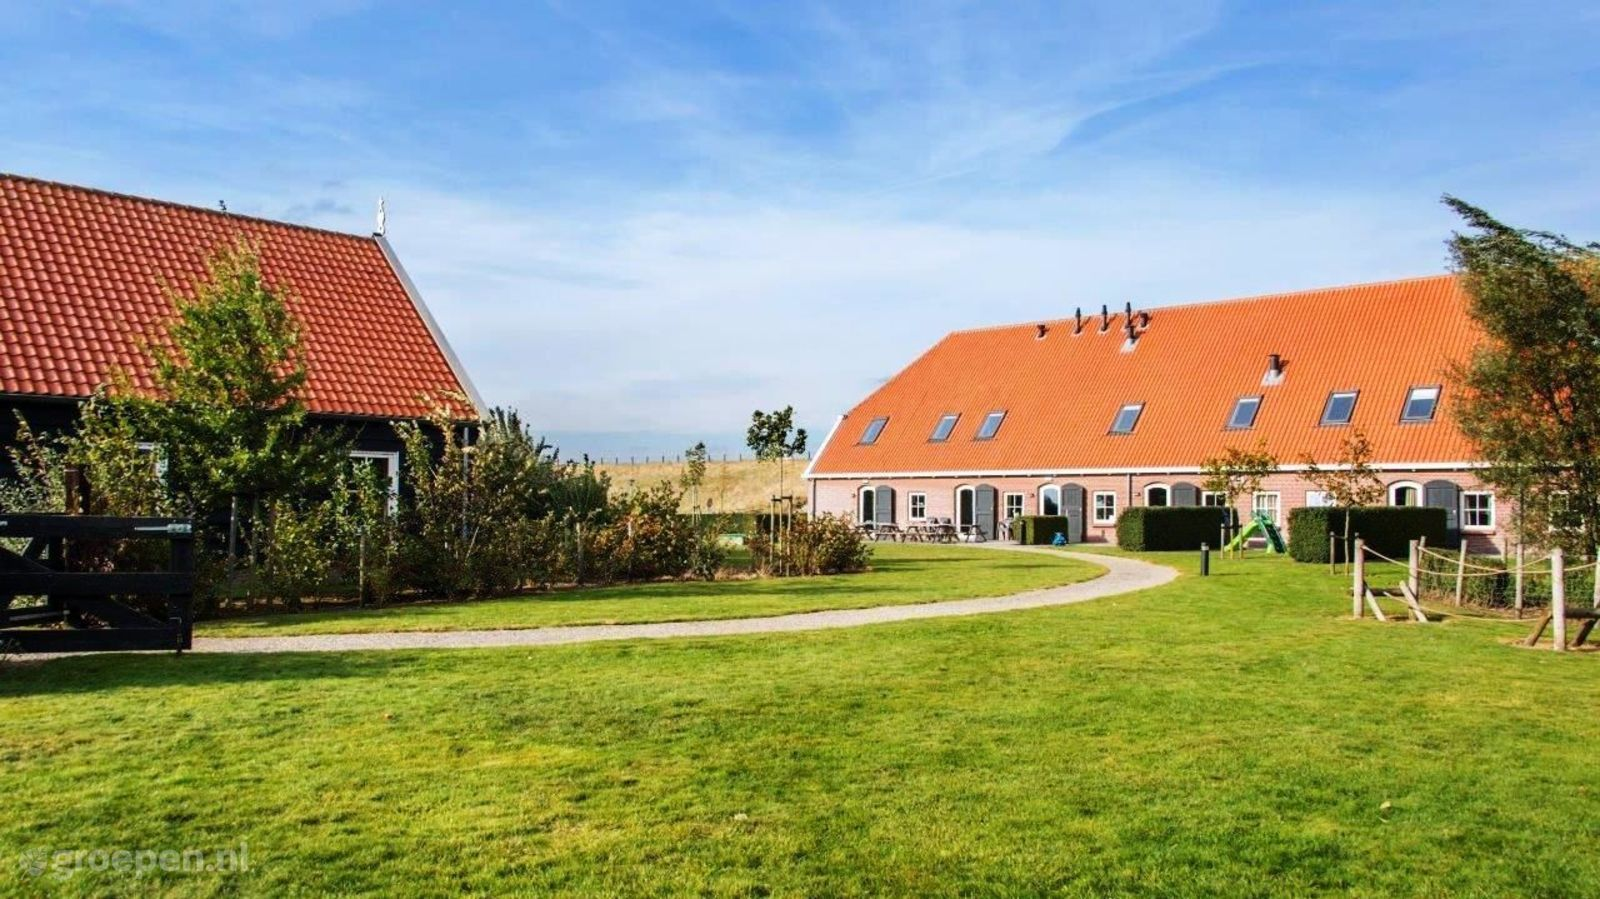 Group accommodation Wemeldinge